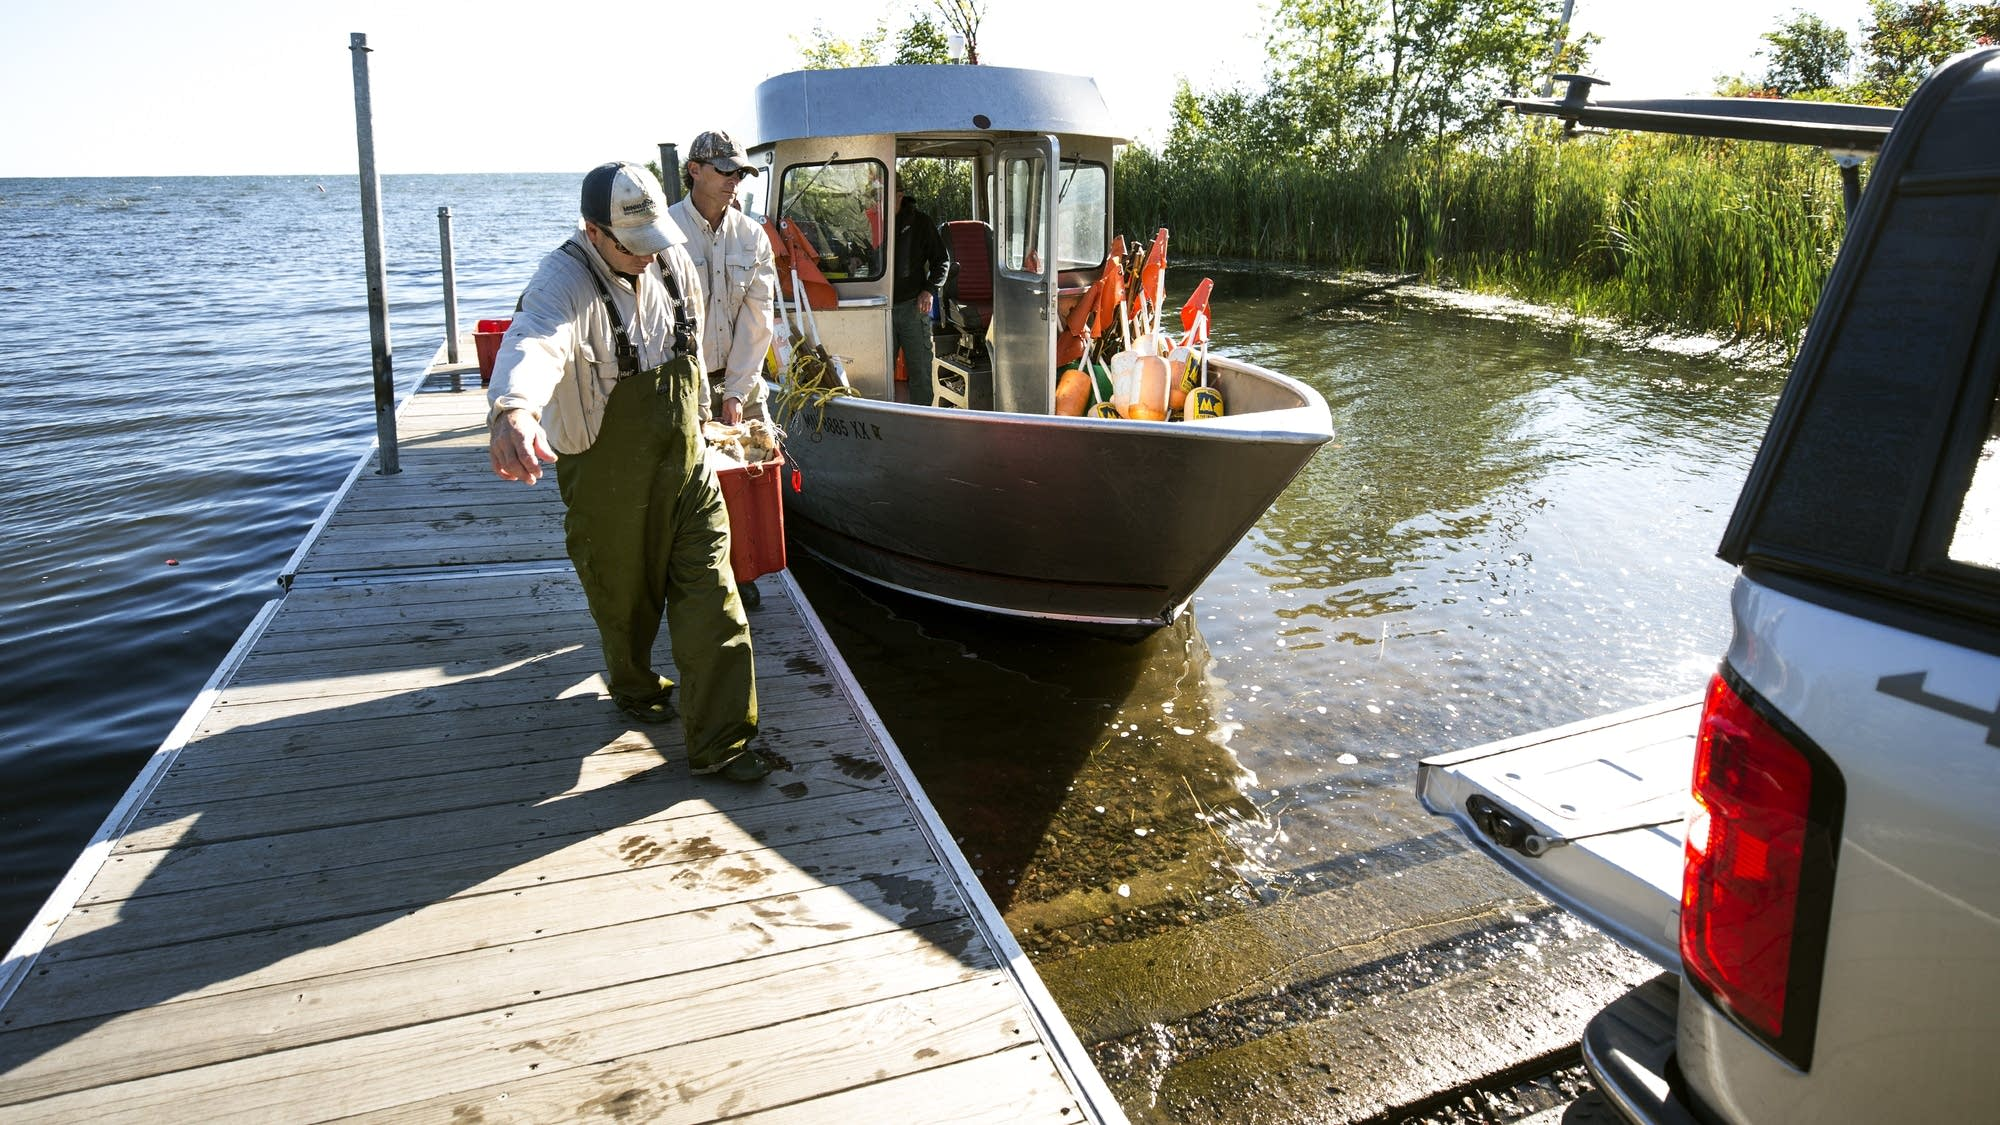 DNR employees Kris Nissen, front, and Greg Berg carry in their catch.